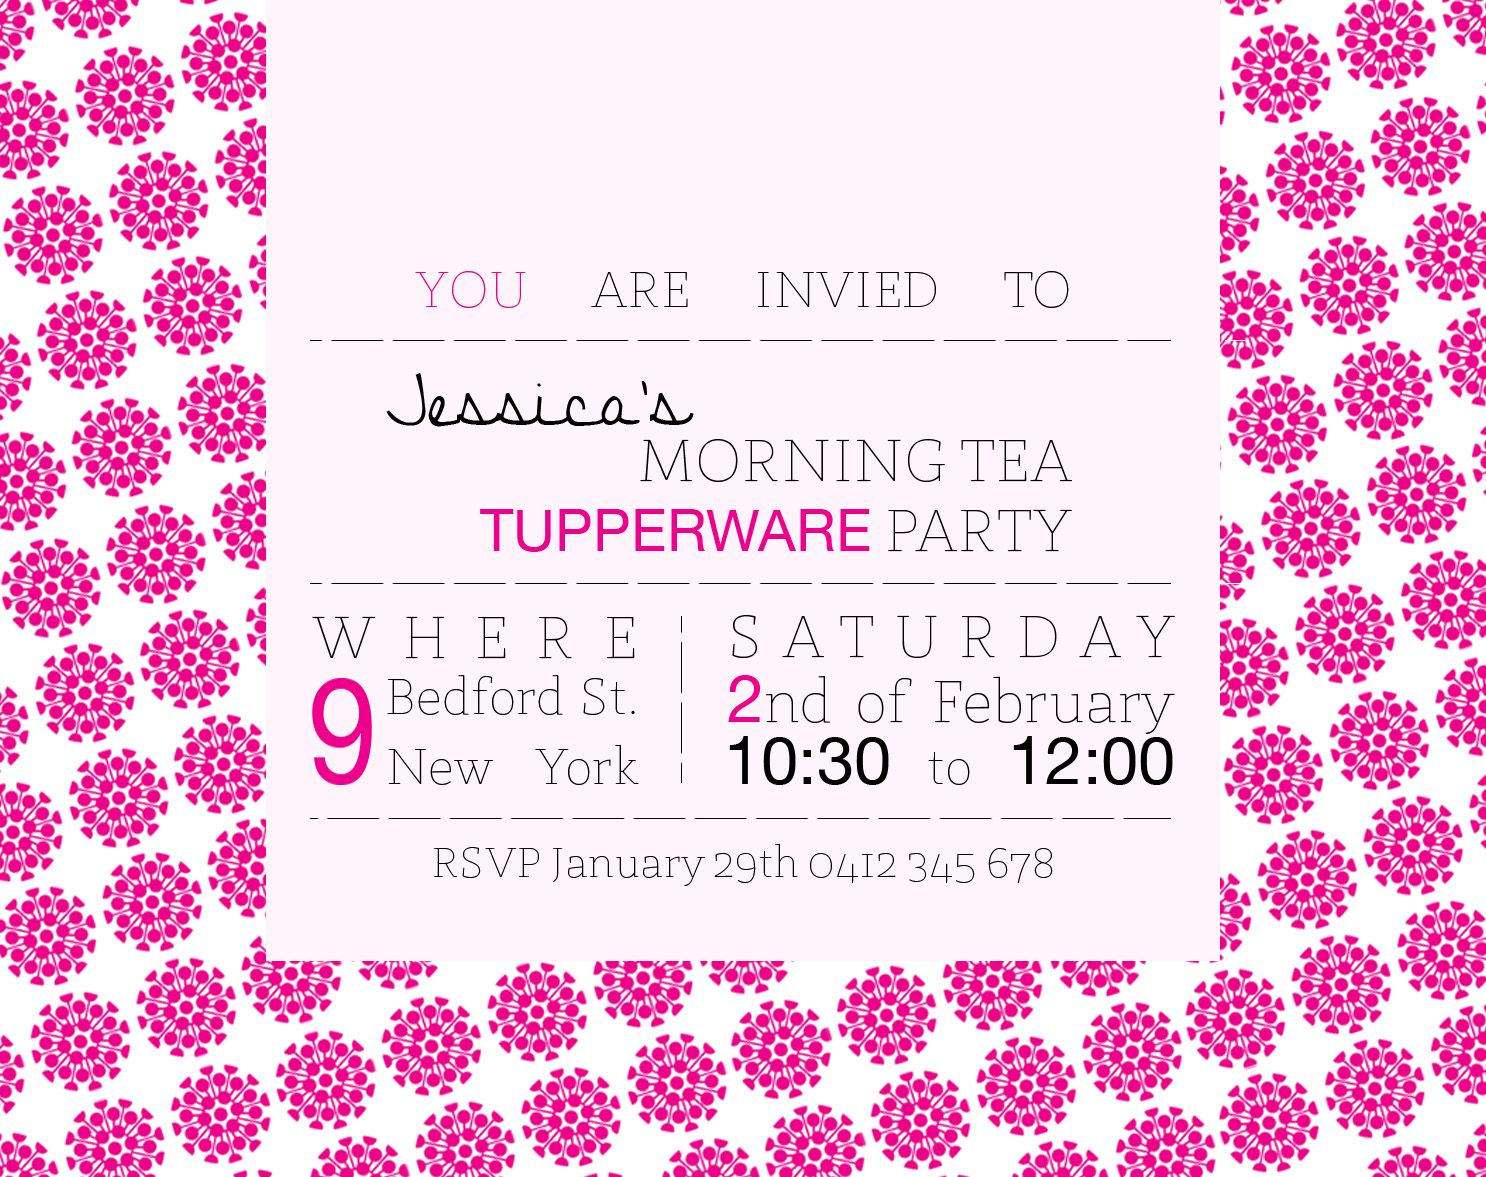 Tupperware Party Invitation. Fonts Used- St Marie, Helvetica Neue ...